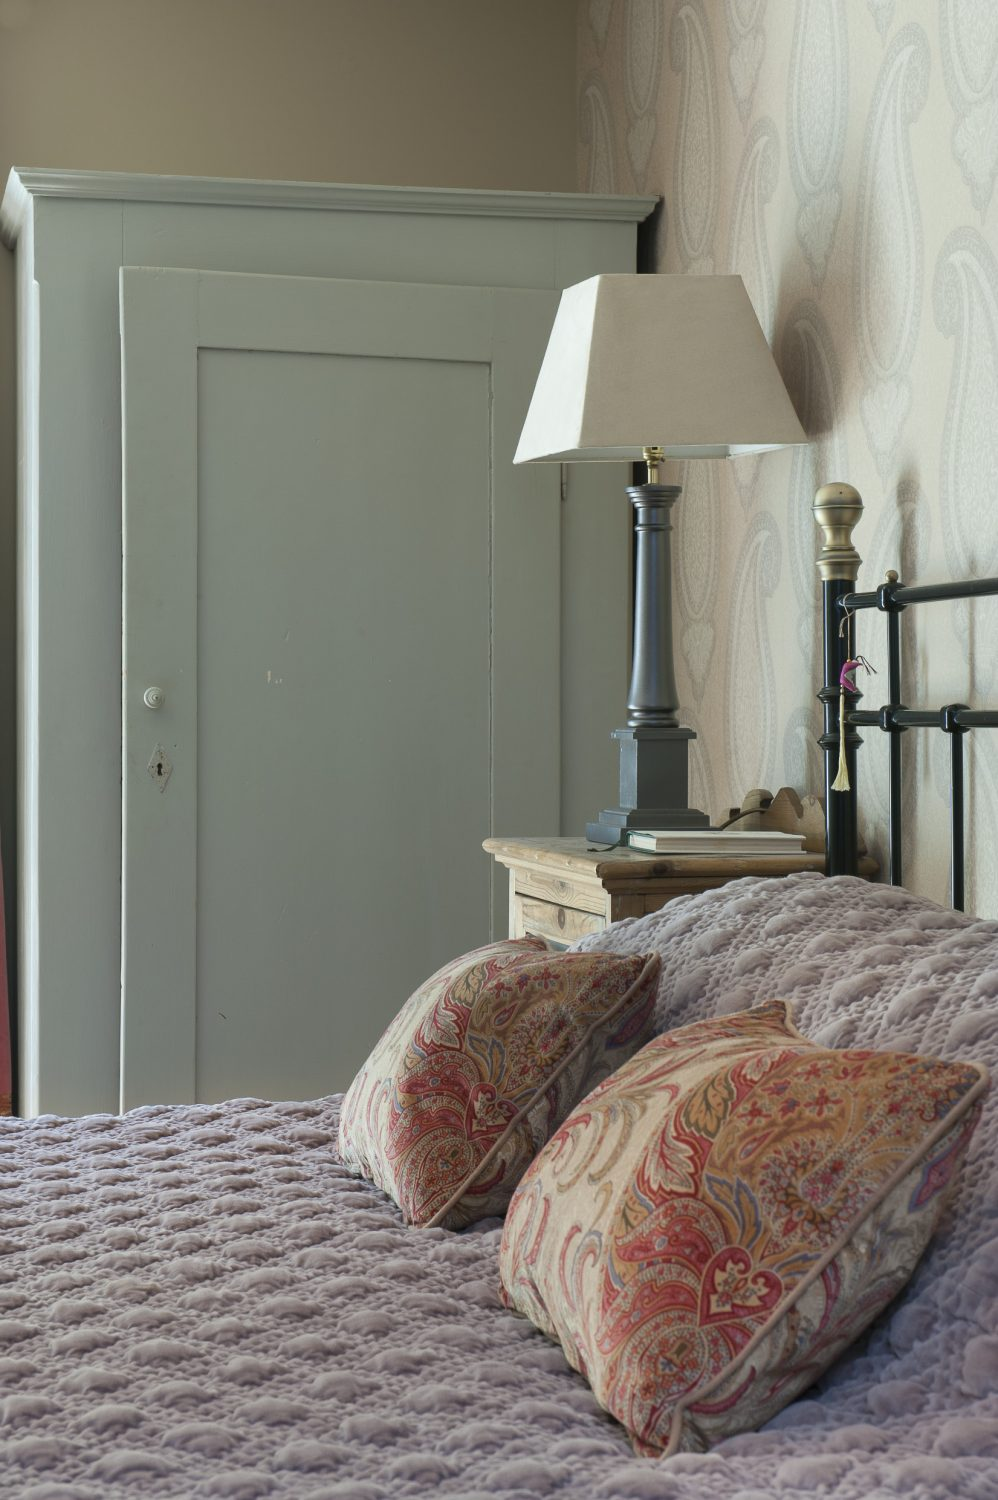 The basement guestroom features a Victorian style brass bedstead and distressed bedside units from Foxhole Antiques